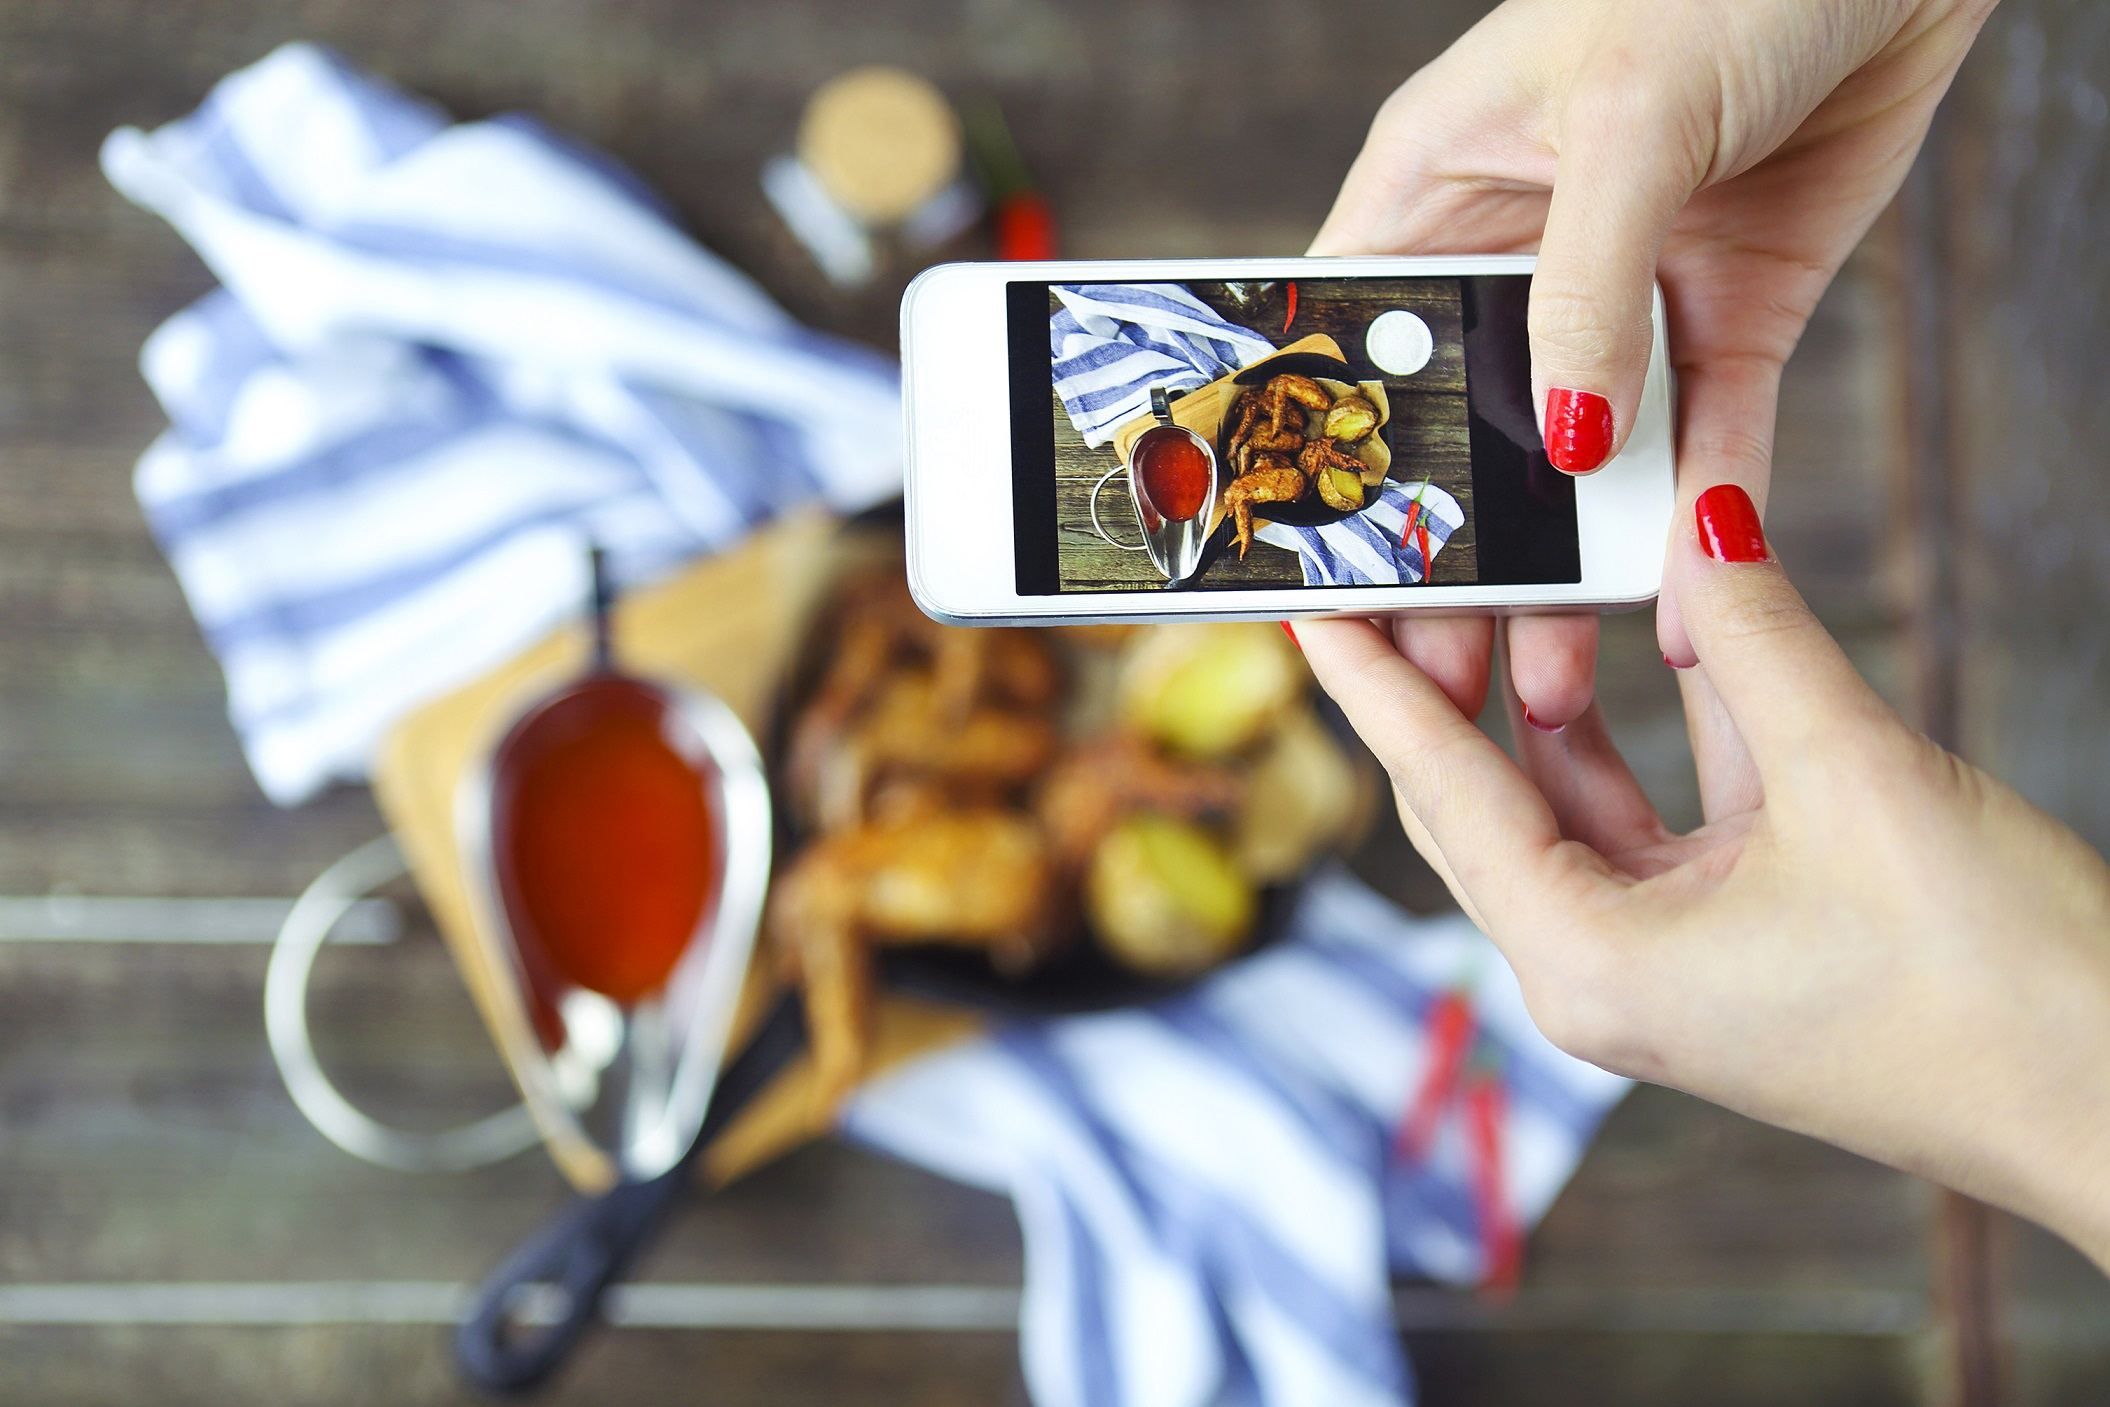 Woman taking photo of food for instagram